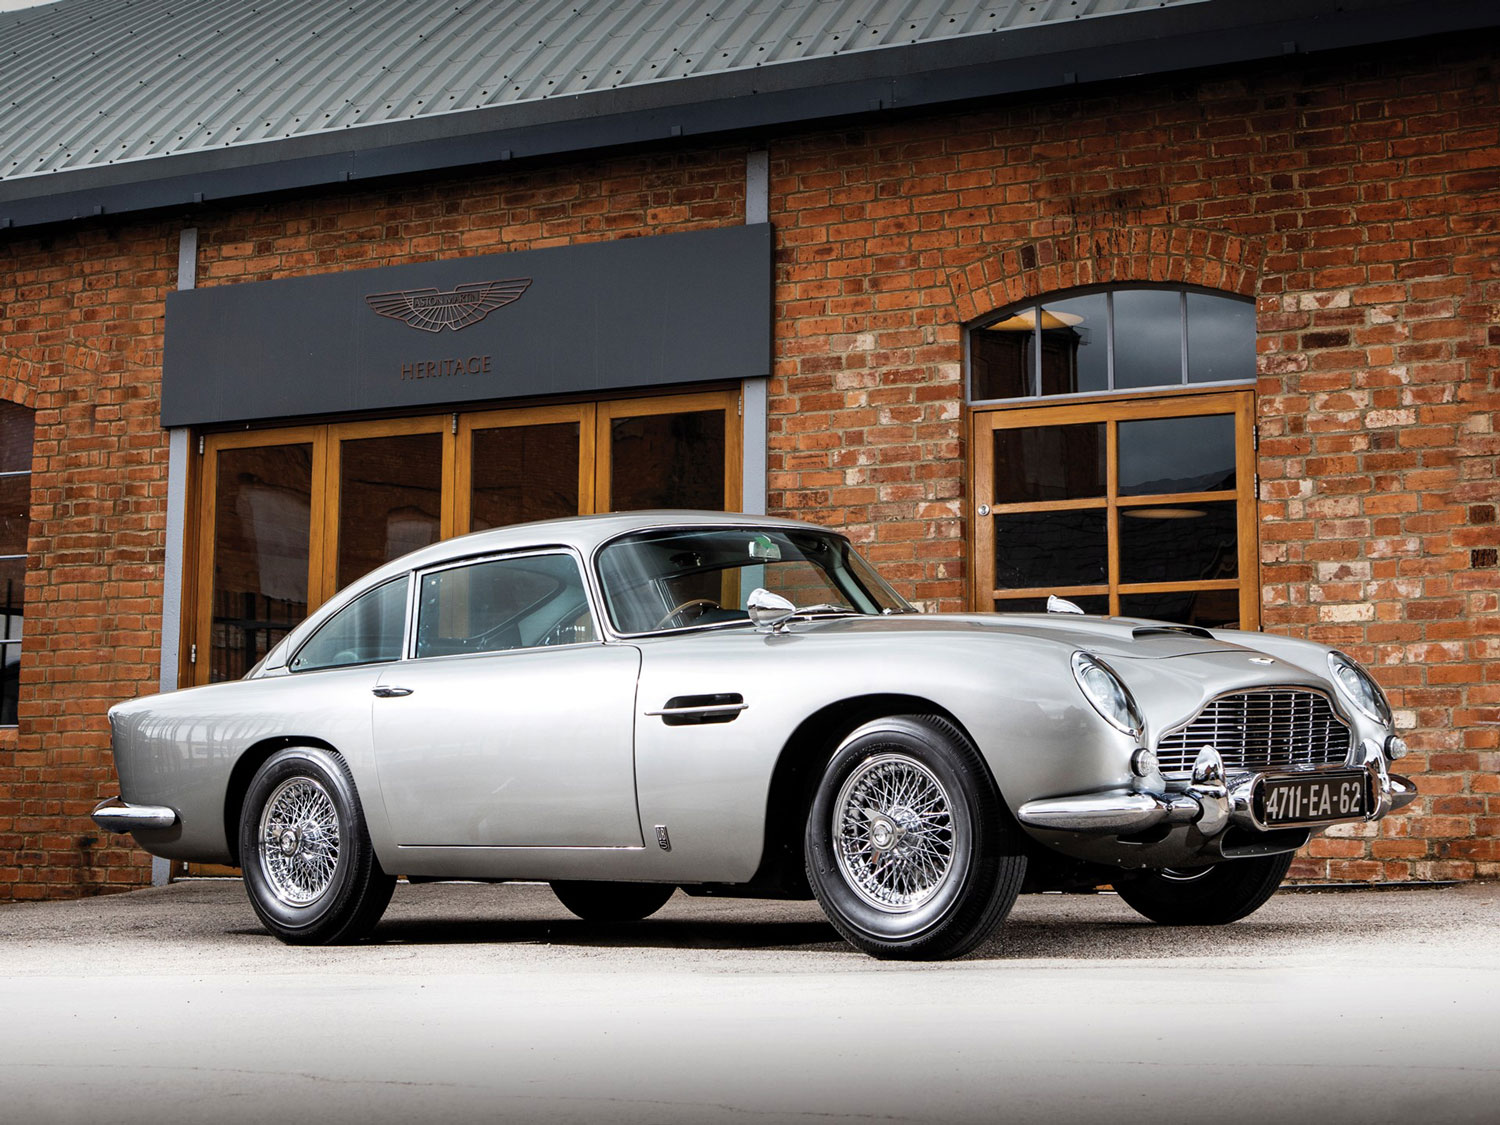 James Bond 1965 Aston Martin DB5 could sell for $11M thumbnail